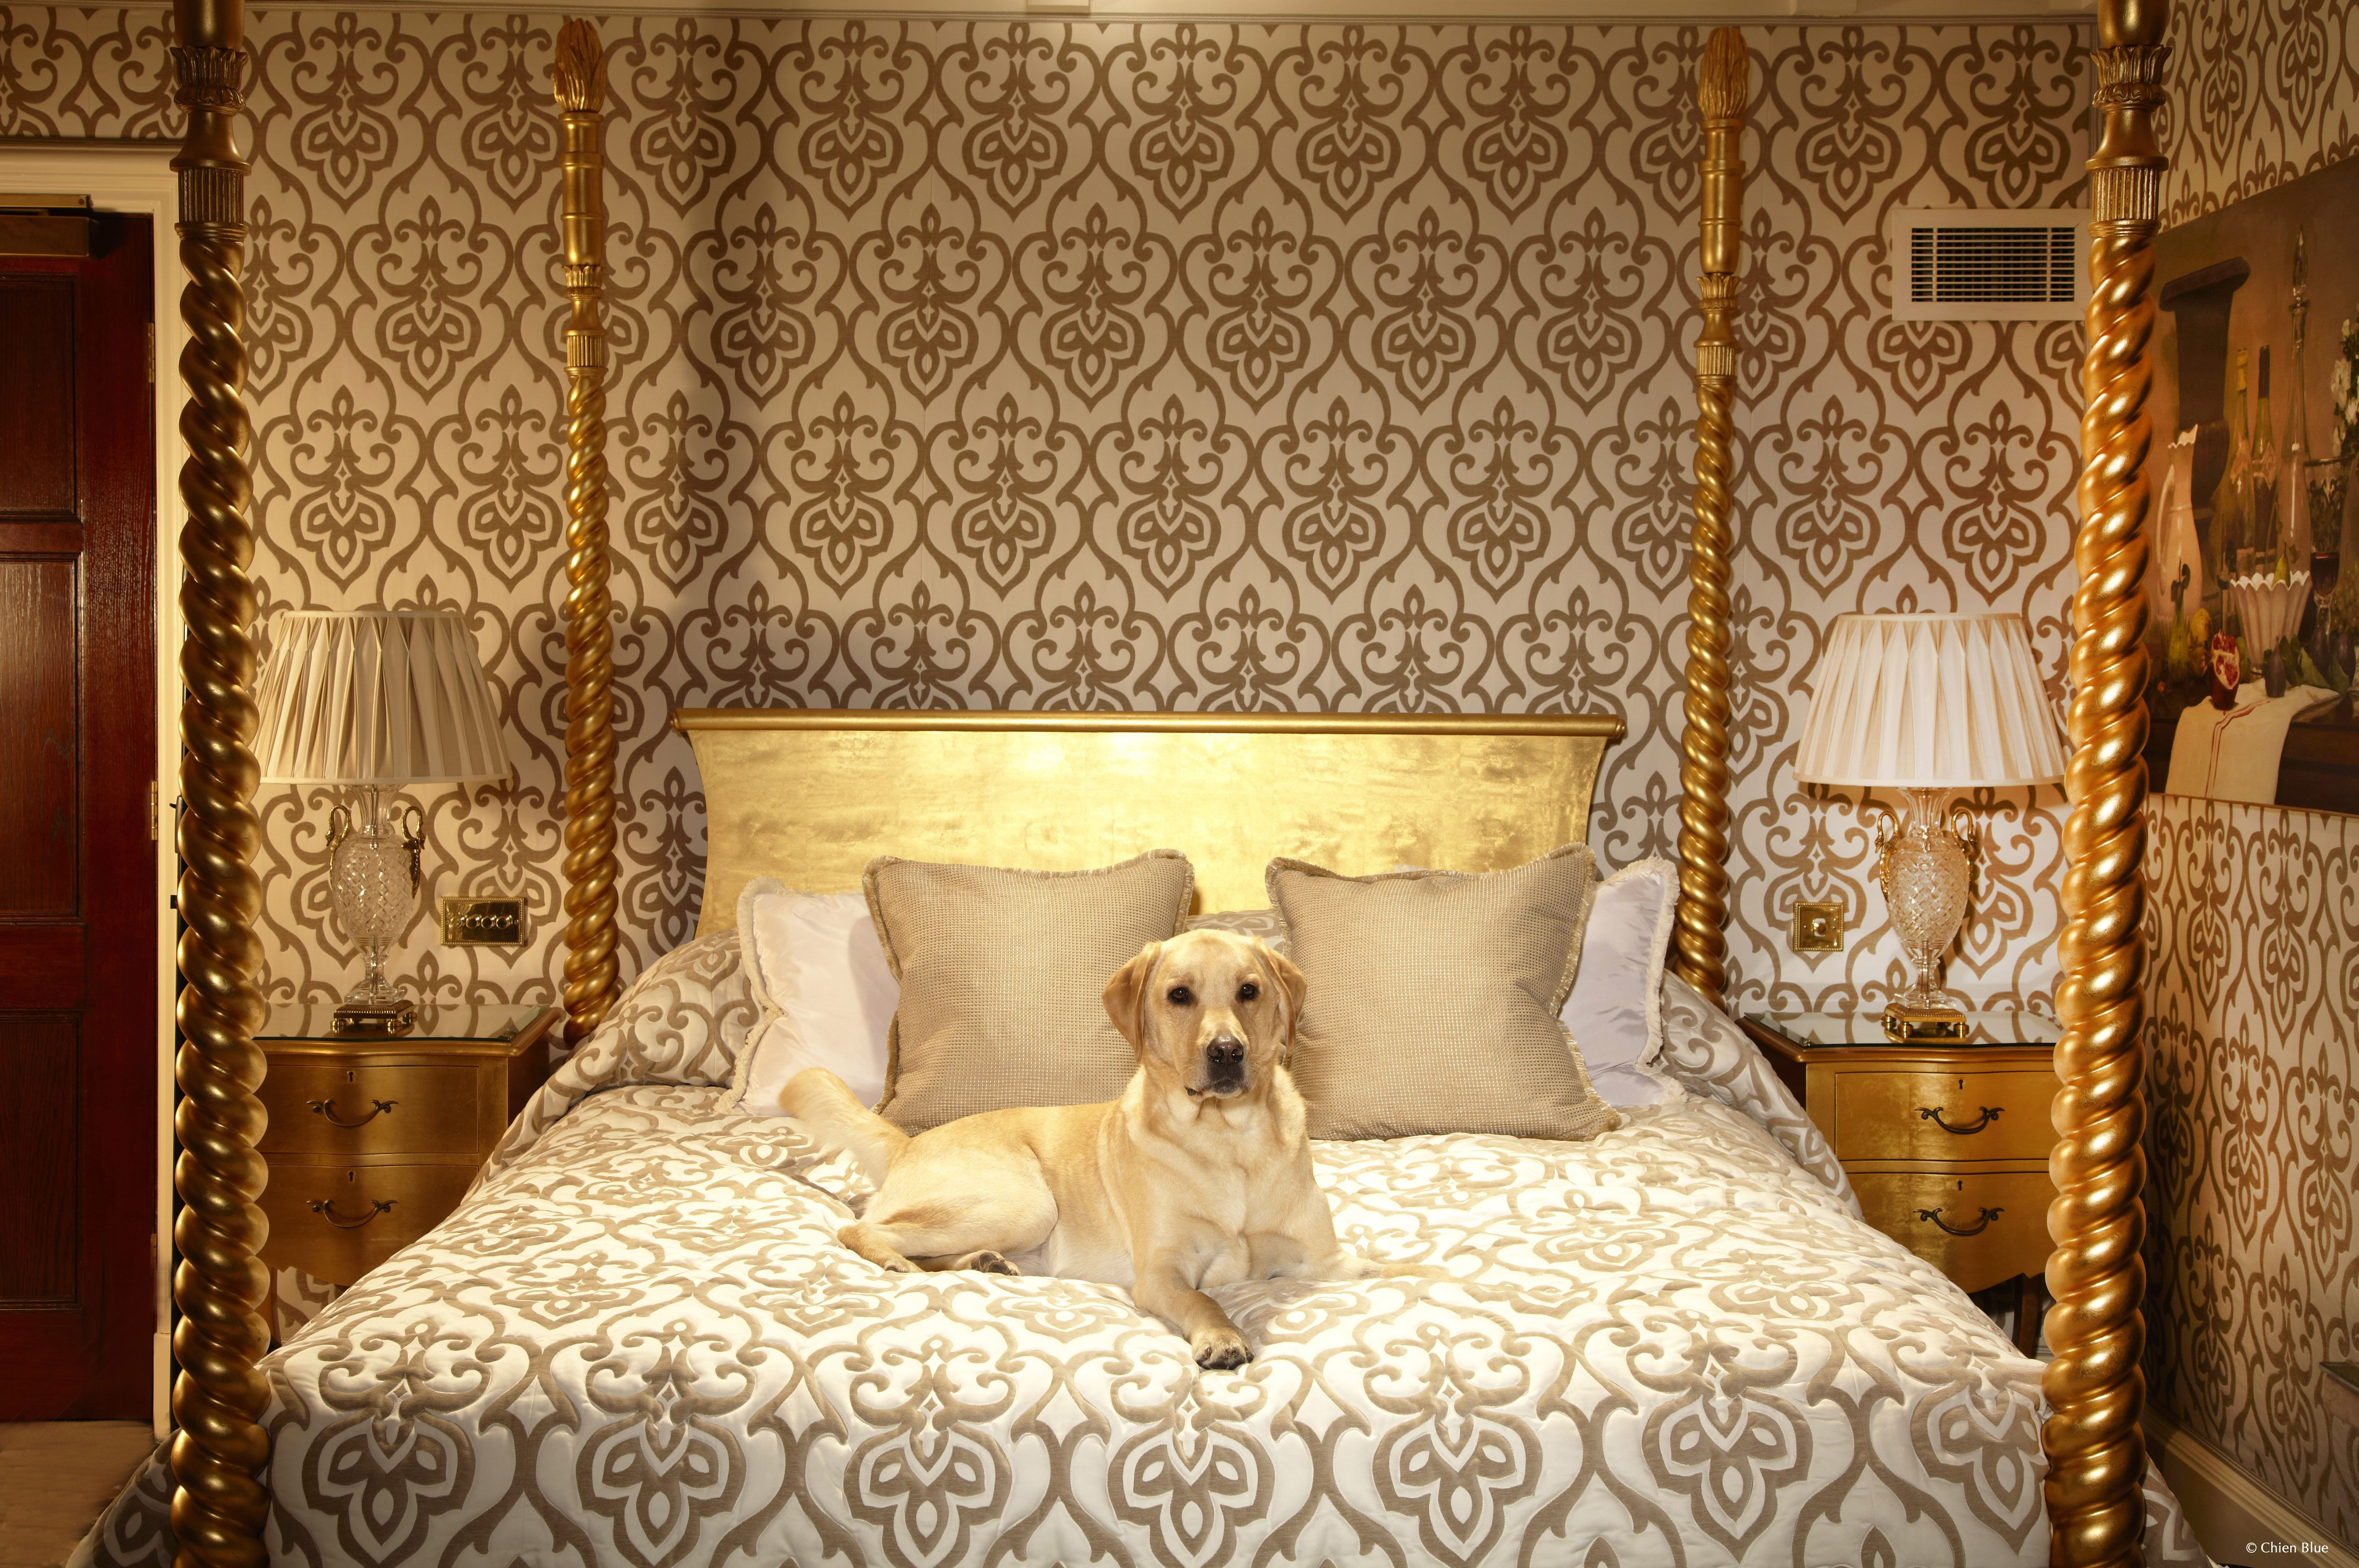 12 Pet-Friendly Hotels With Luxury Pet Accommodations